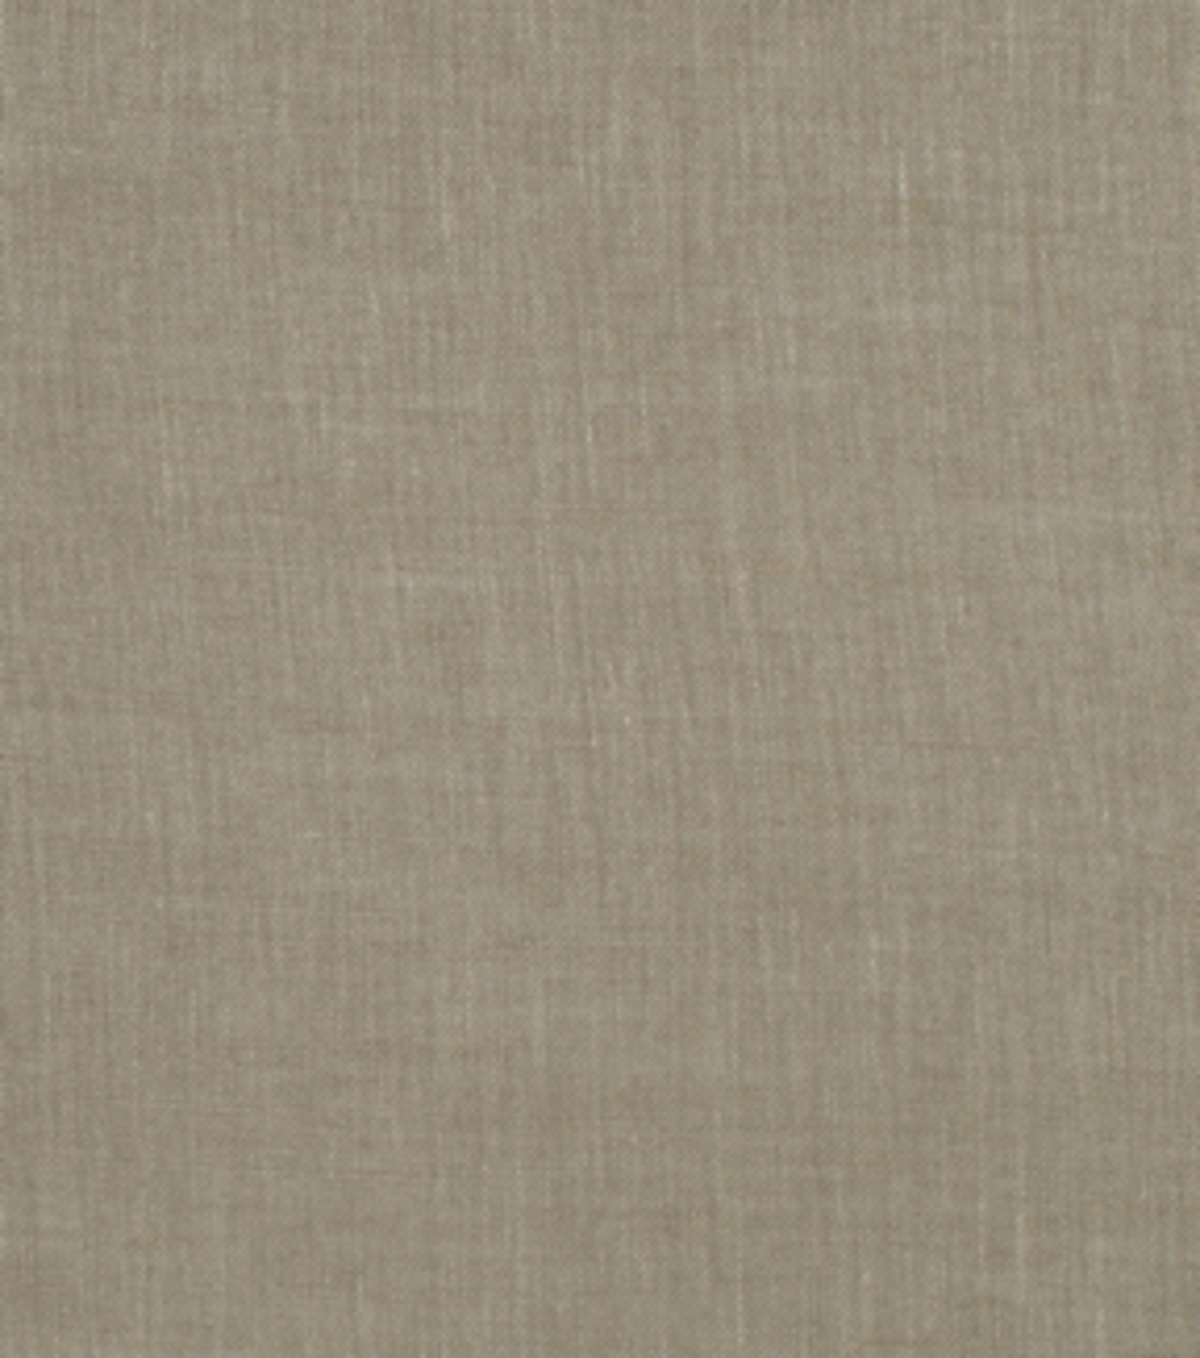 Home Decor 8\u0022x8\u0022 Fabric Swatch-Eaton Square Dixon Khaki